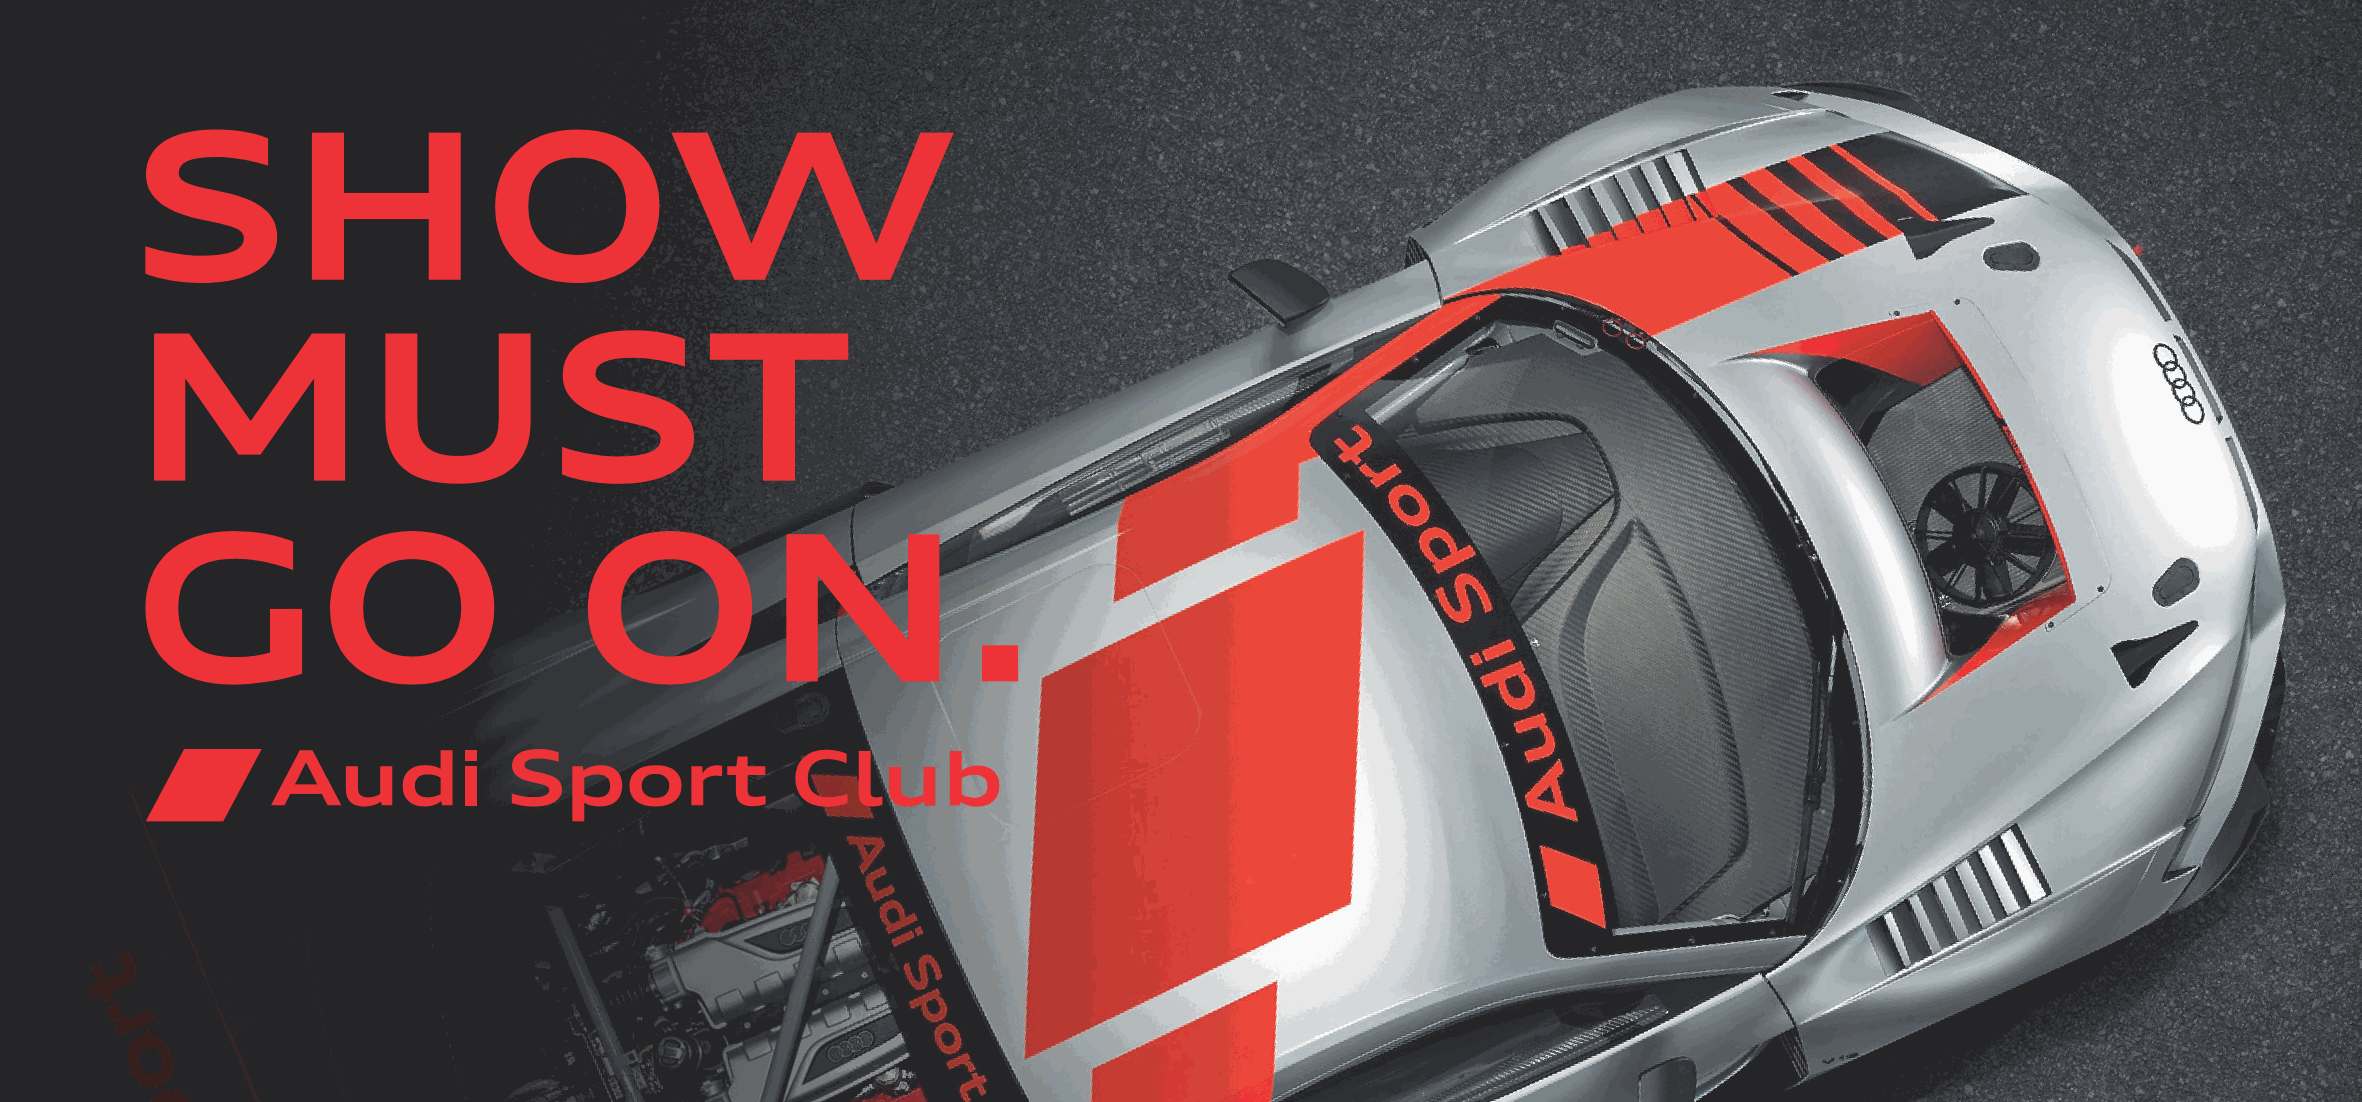 Audi Sport Club - Show must go on